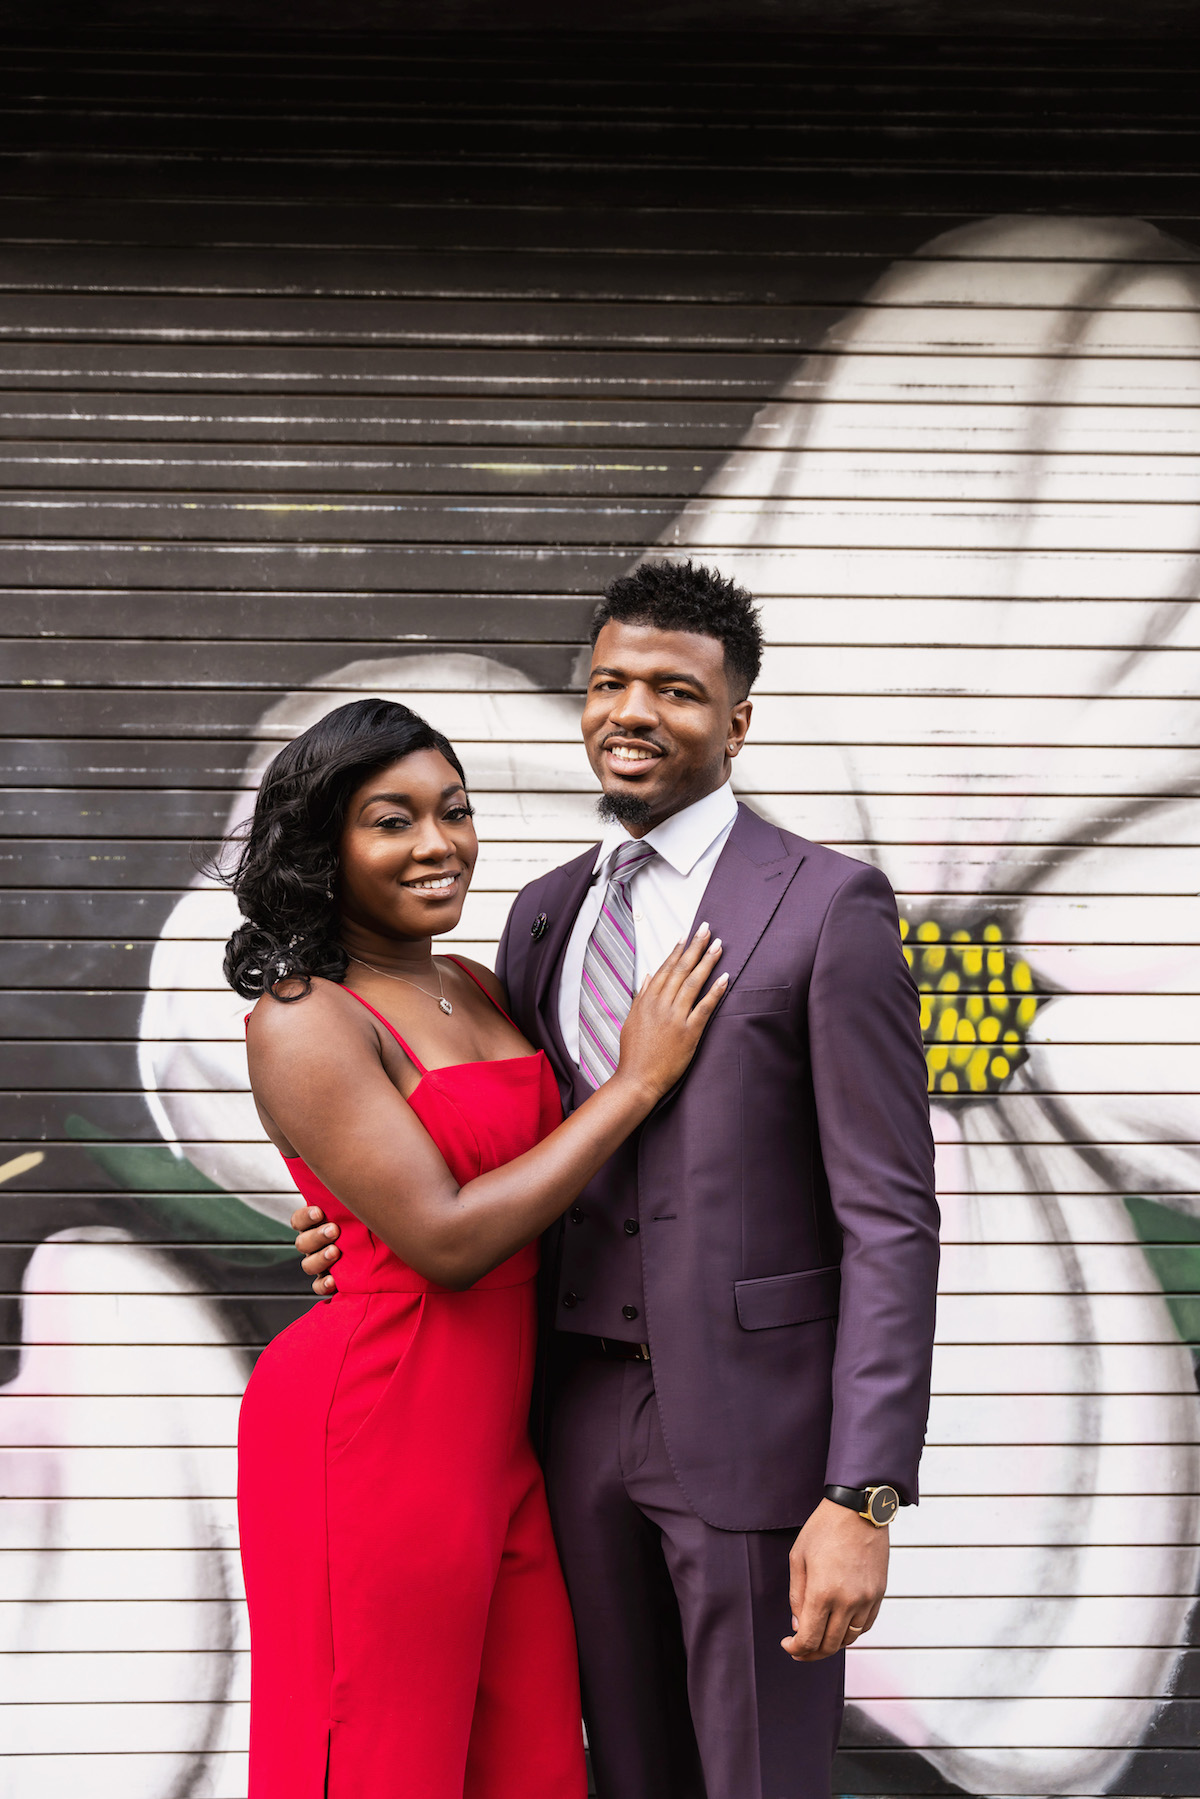 Married at First Sight cast members Paige Banks and Chris Williams, of Season 12